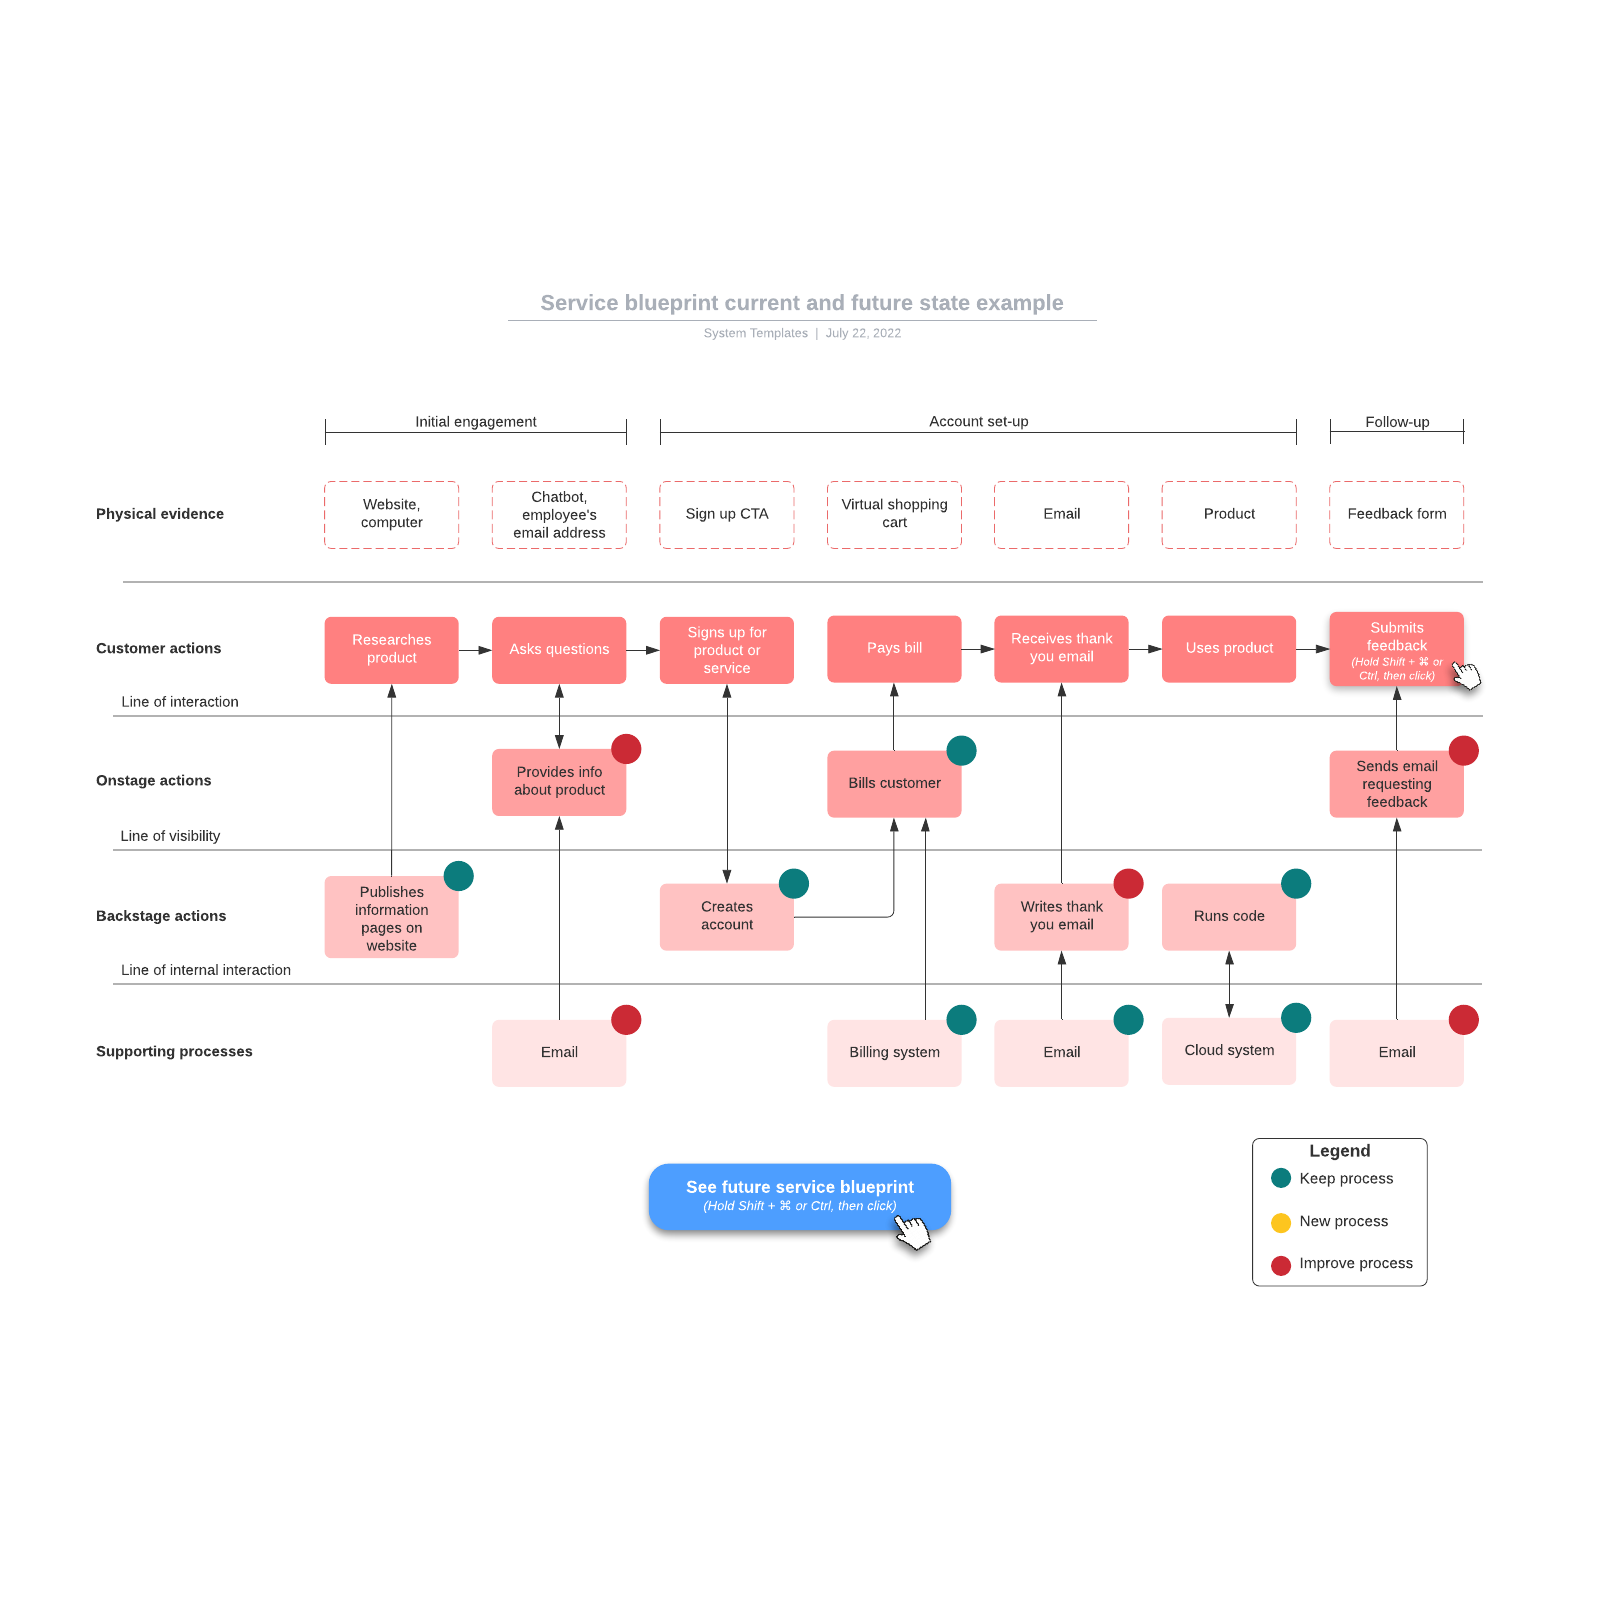 Service blueprint current and future state example